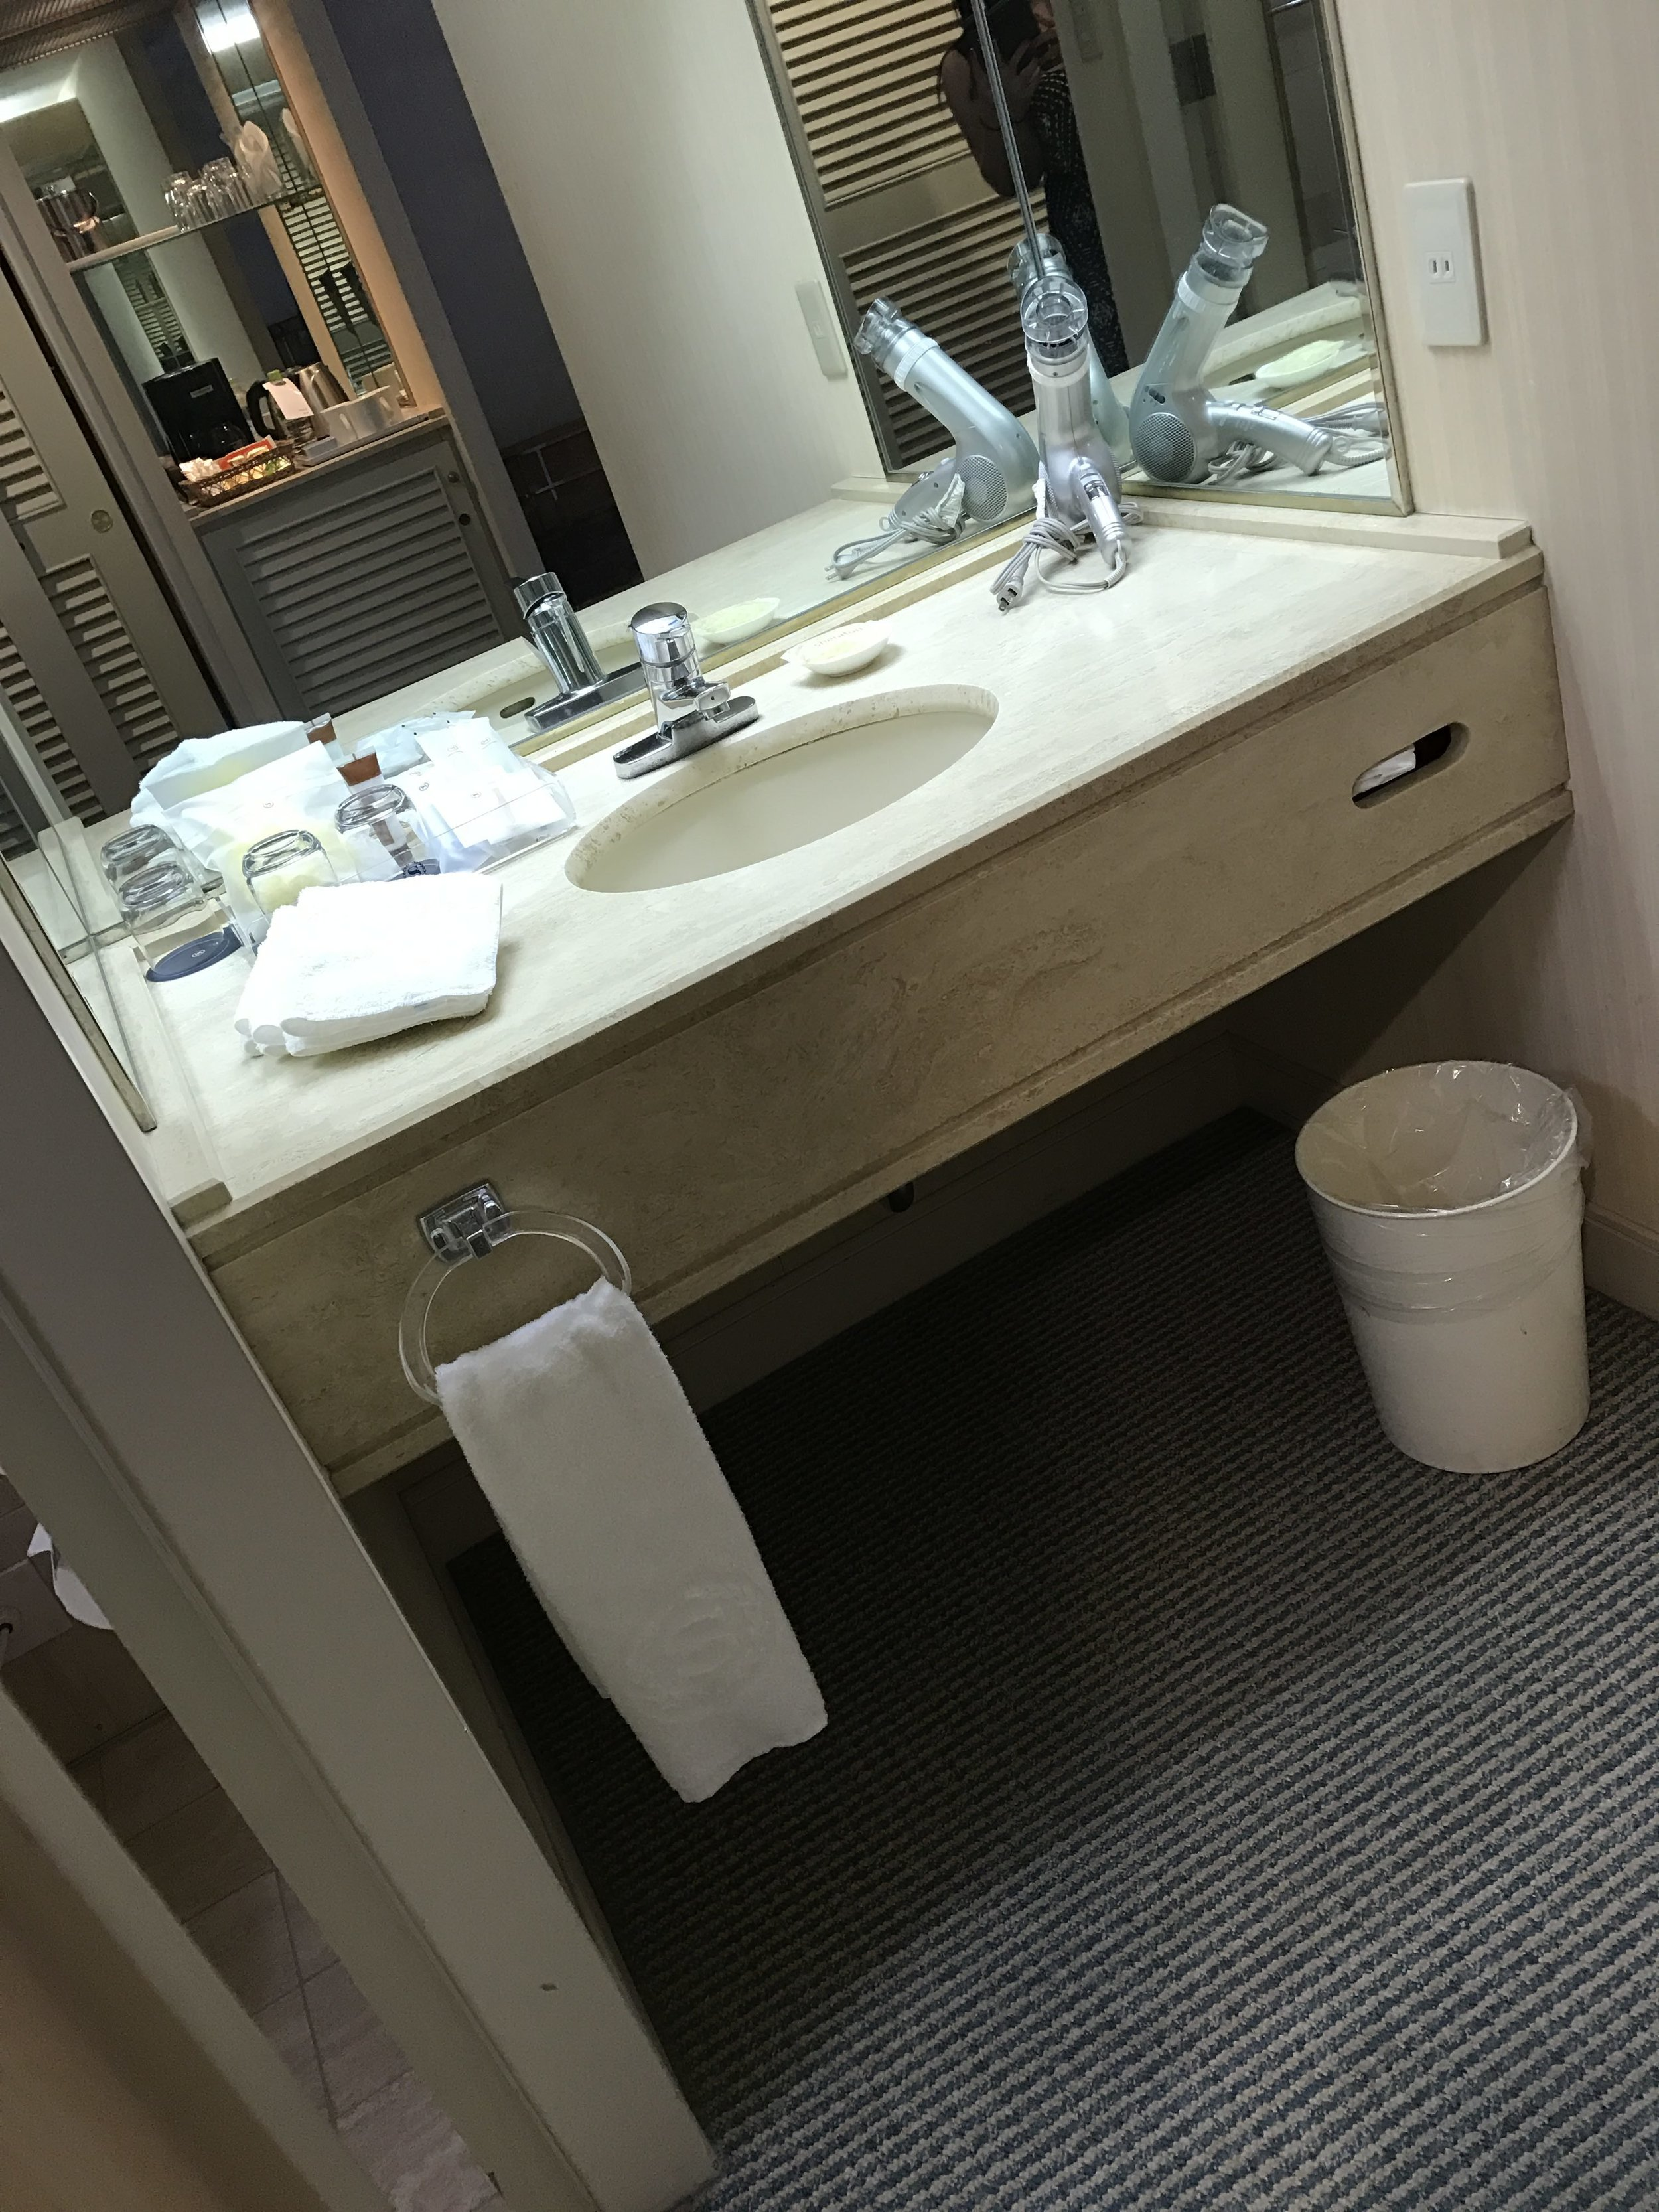 Love that the bathroom sink is separate from the shower and toilet. It makes getting ready easy in the mornings